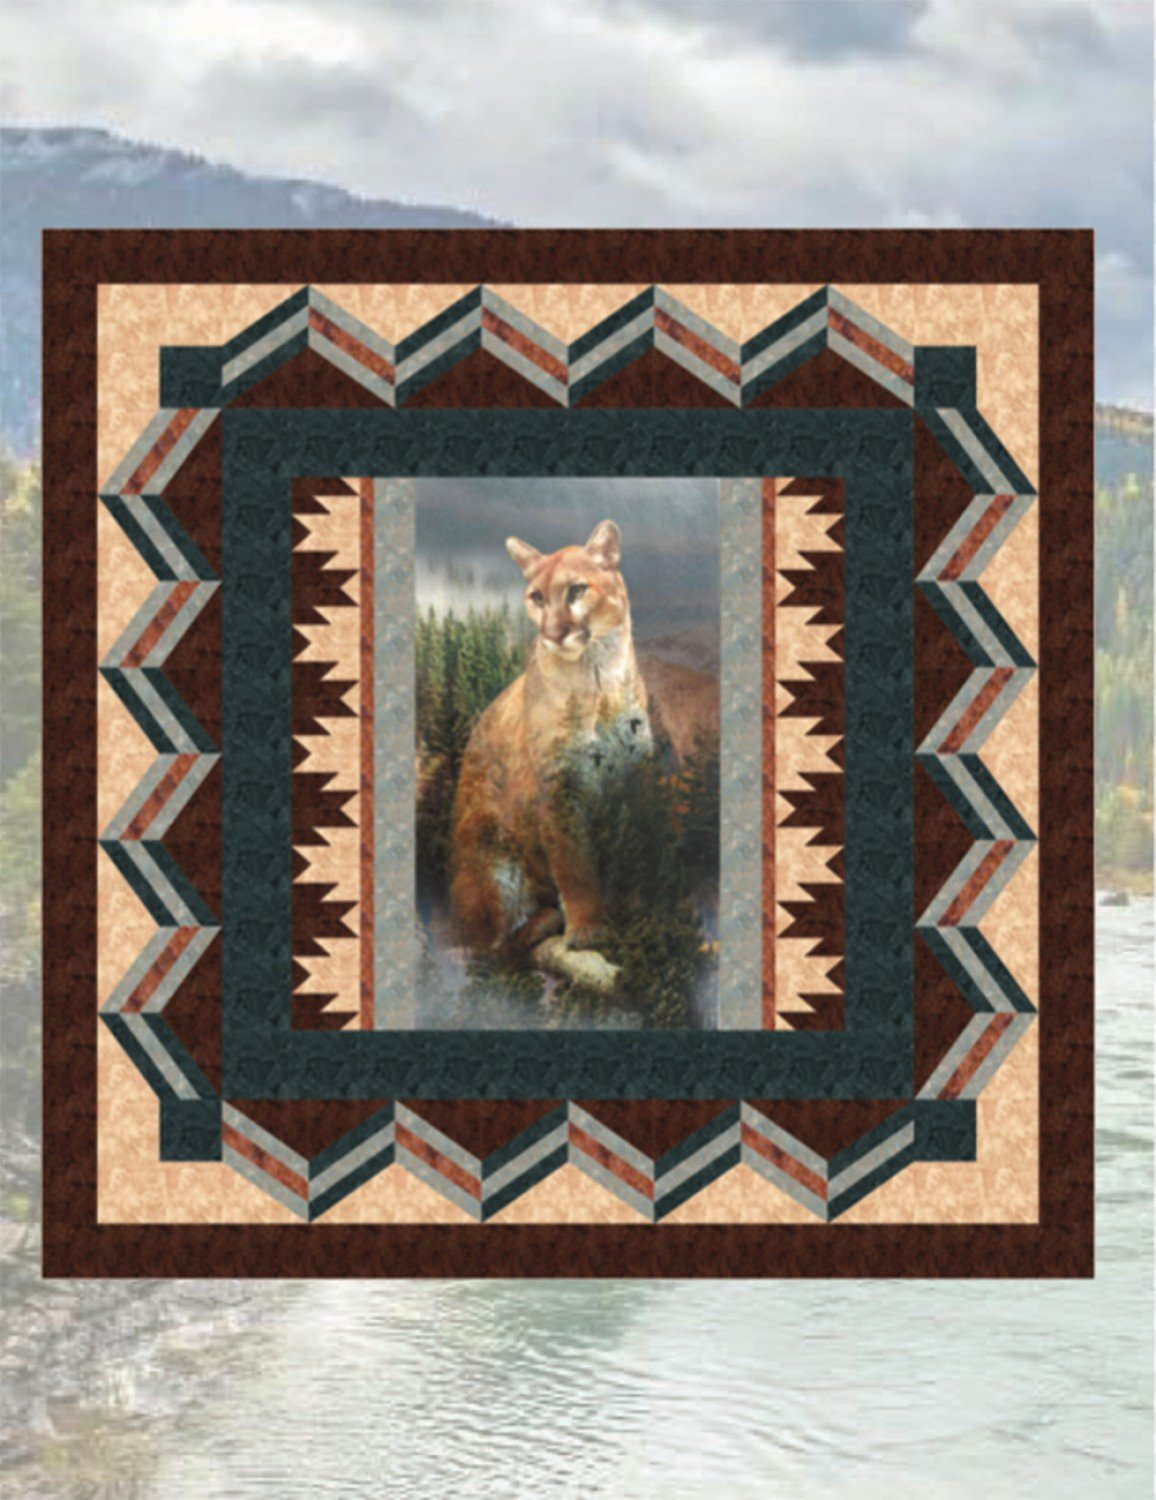 Silent Watcher Quilt Kit - 76 x 76